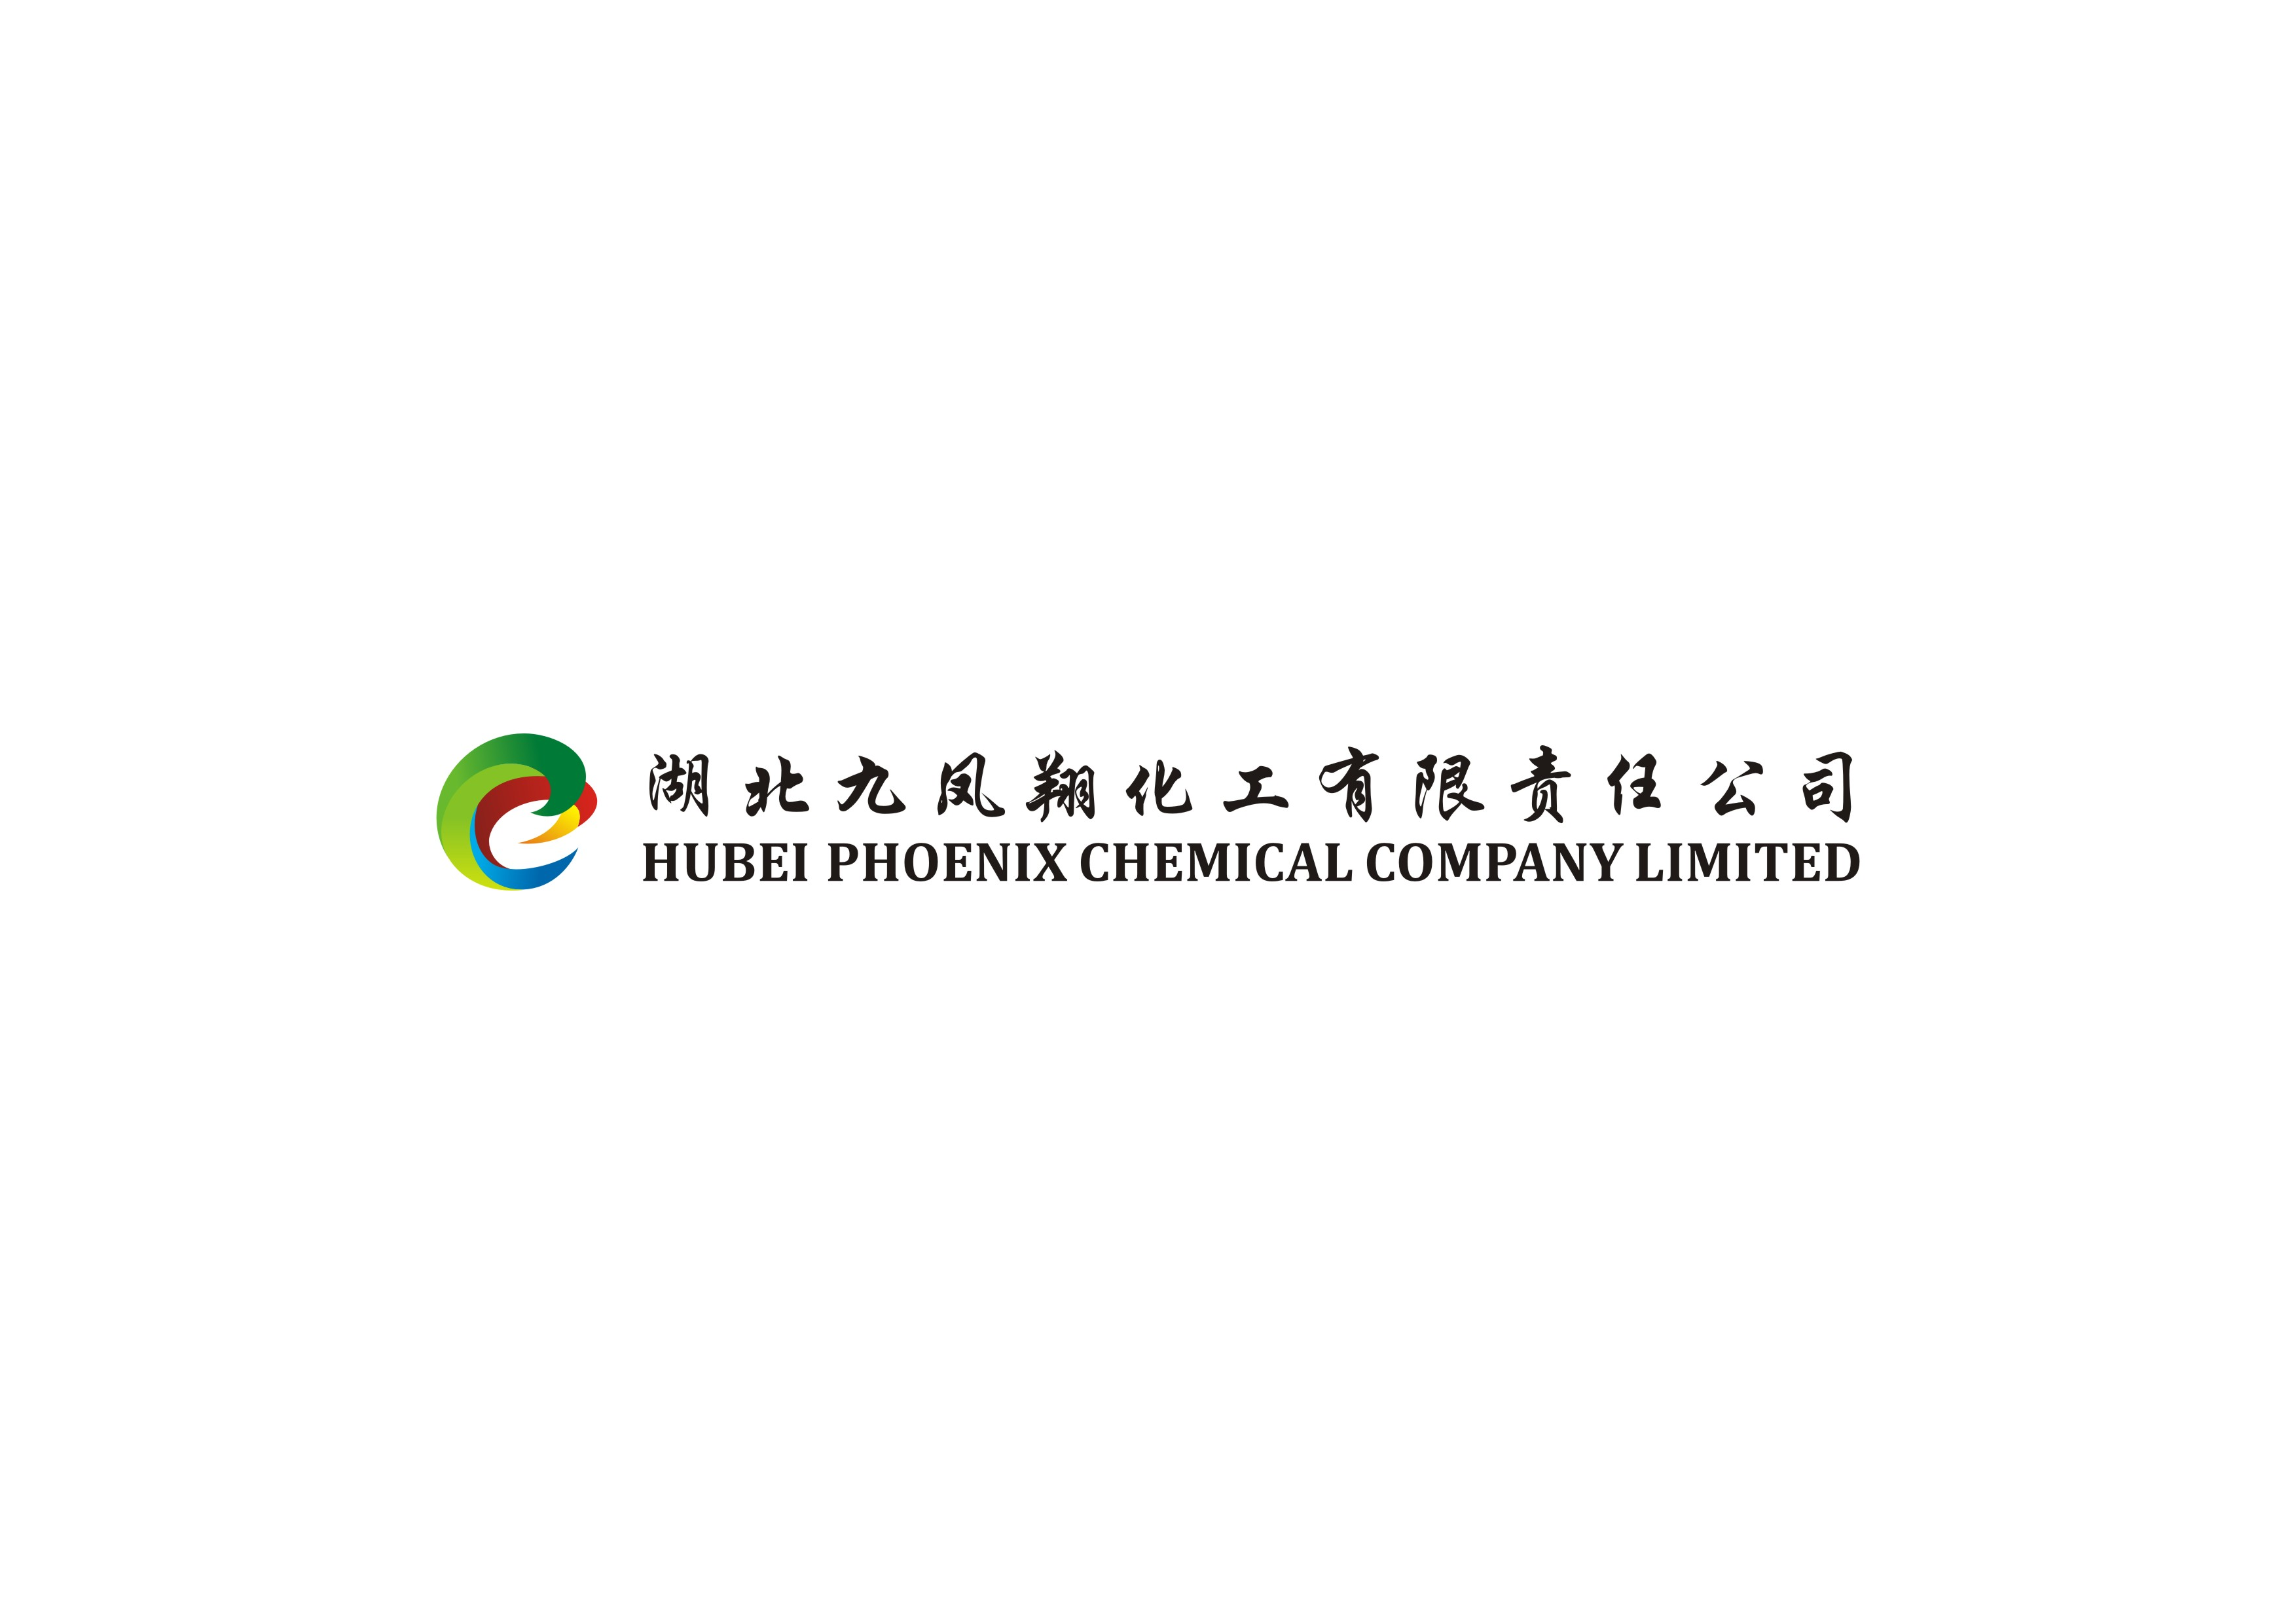 Hubei Phoenix Chemical Company Limited